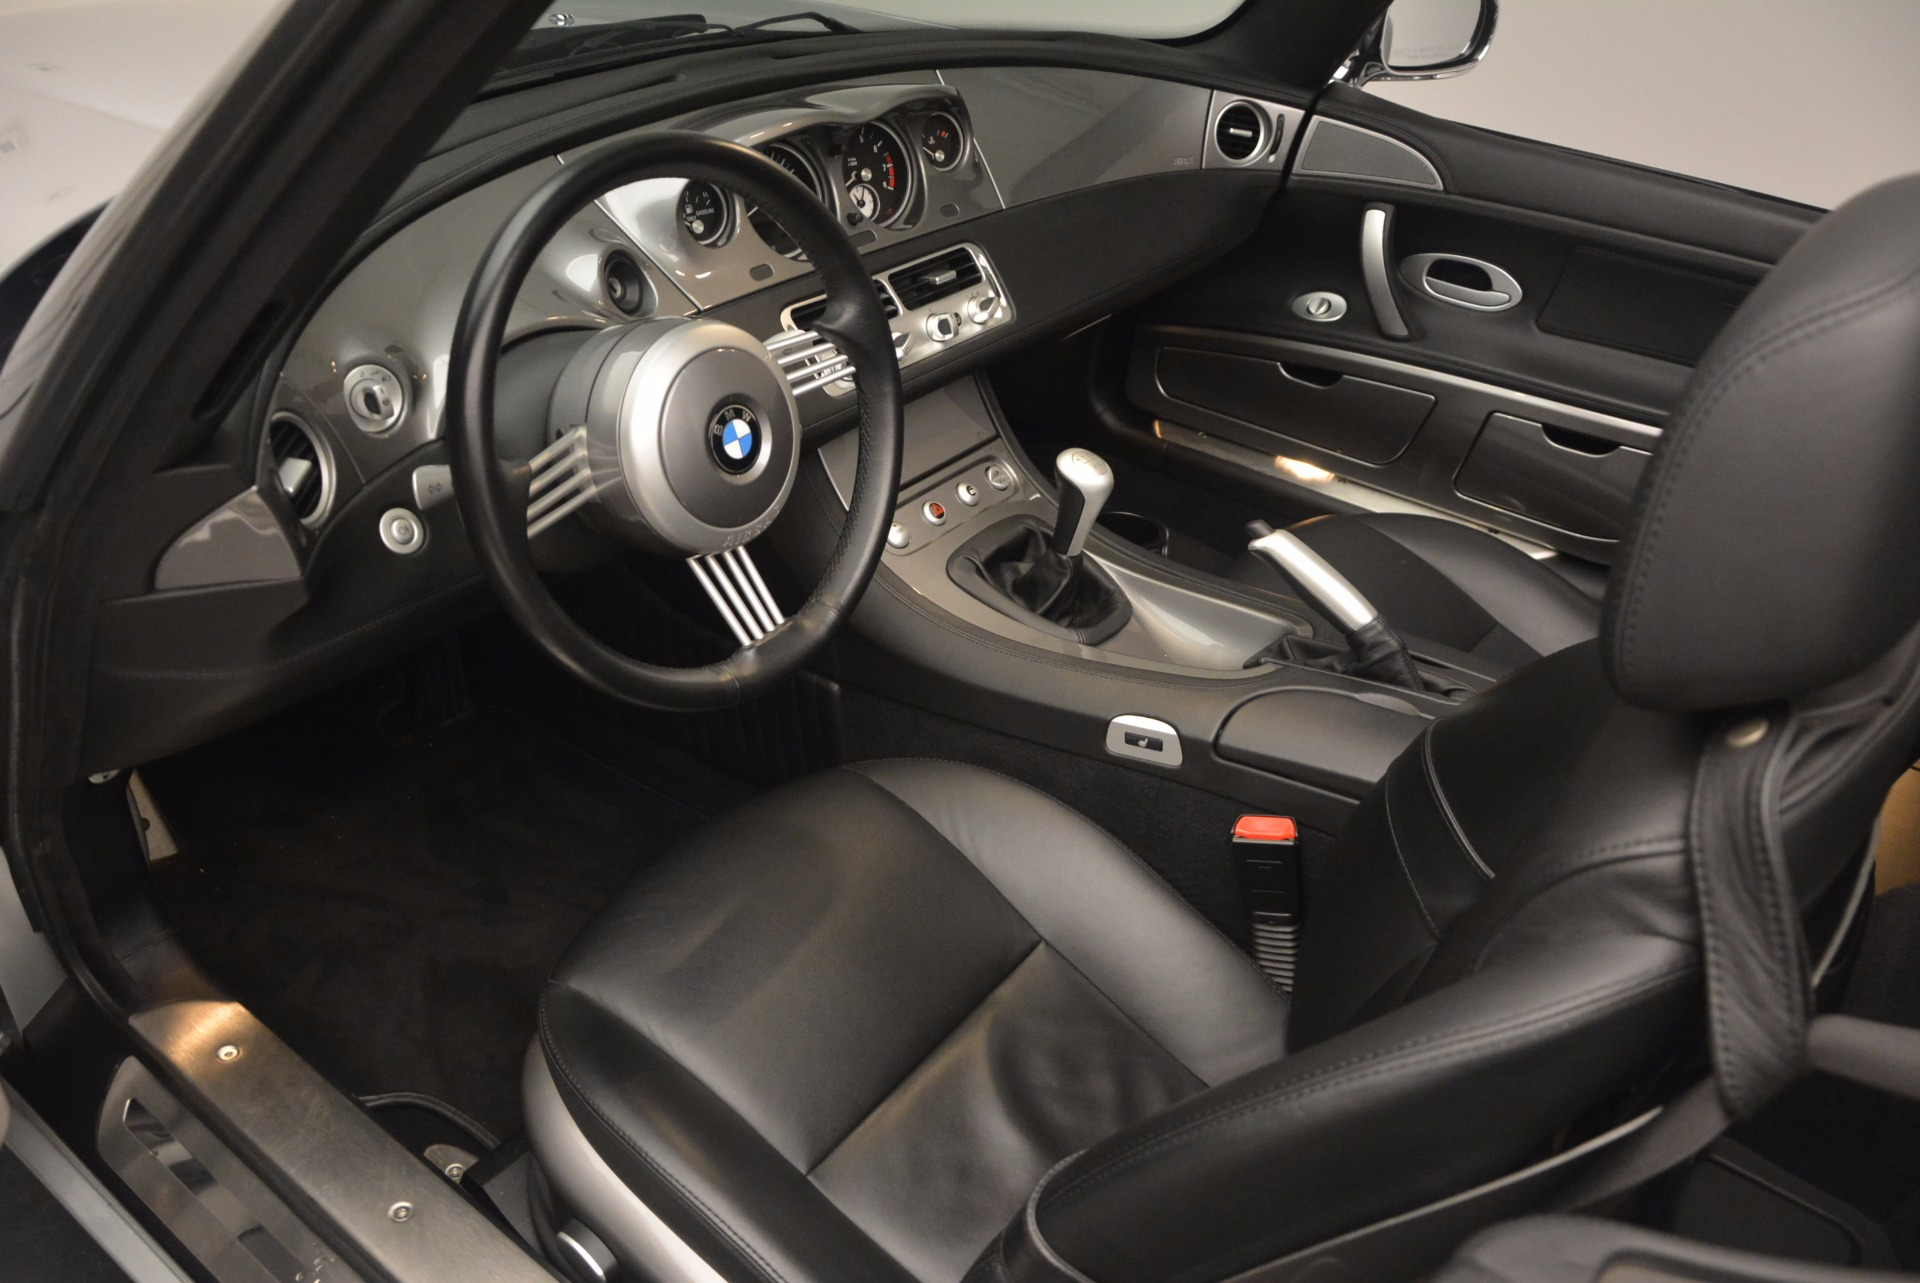 Used 2001 BMW Z8  For Sale In Greenwich, CT. Alfa Romeo of Greenwich, 7221 1293_p30